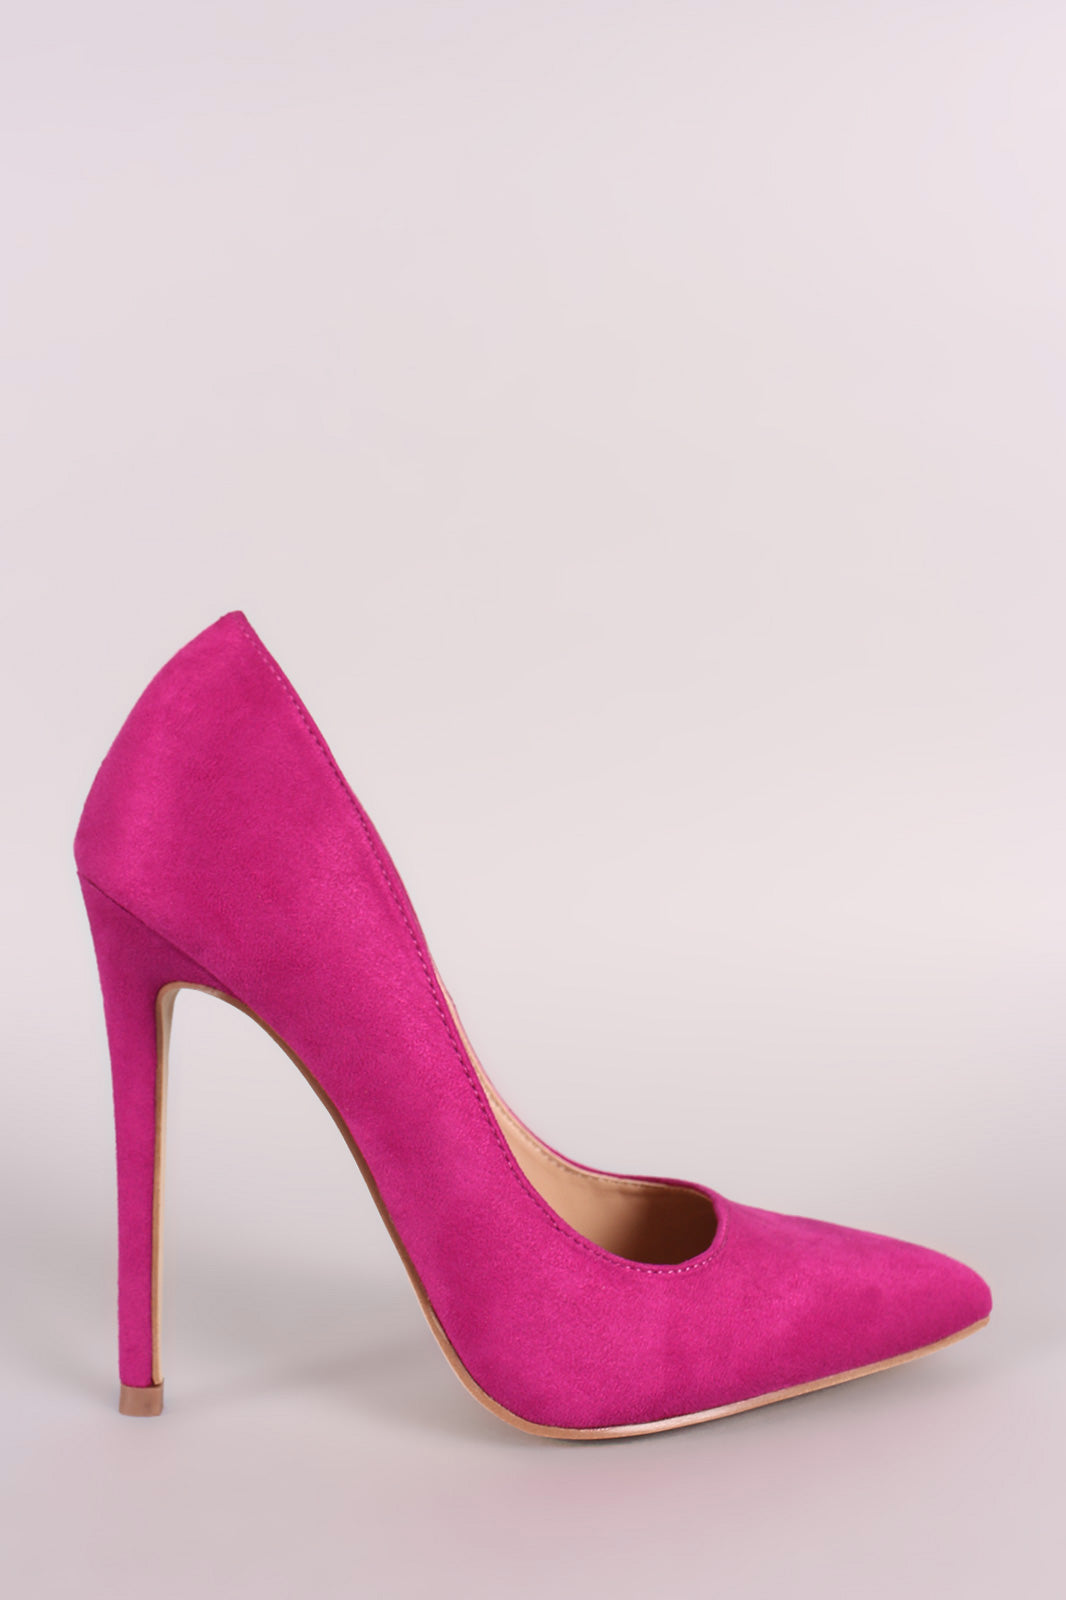 Vegan Suede Pointy Toe Stiletto Pump